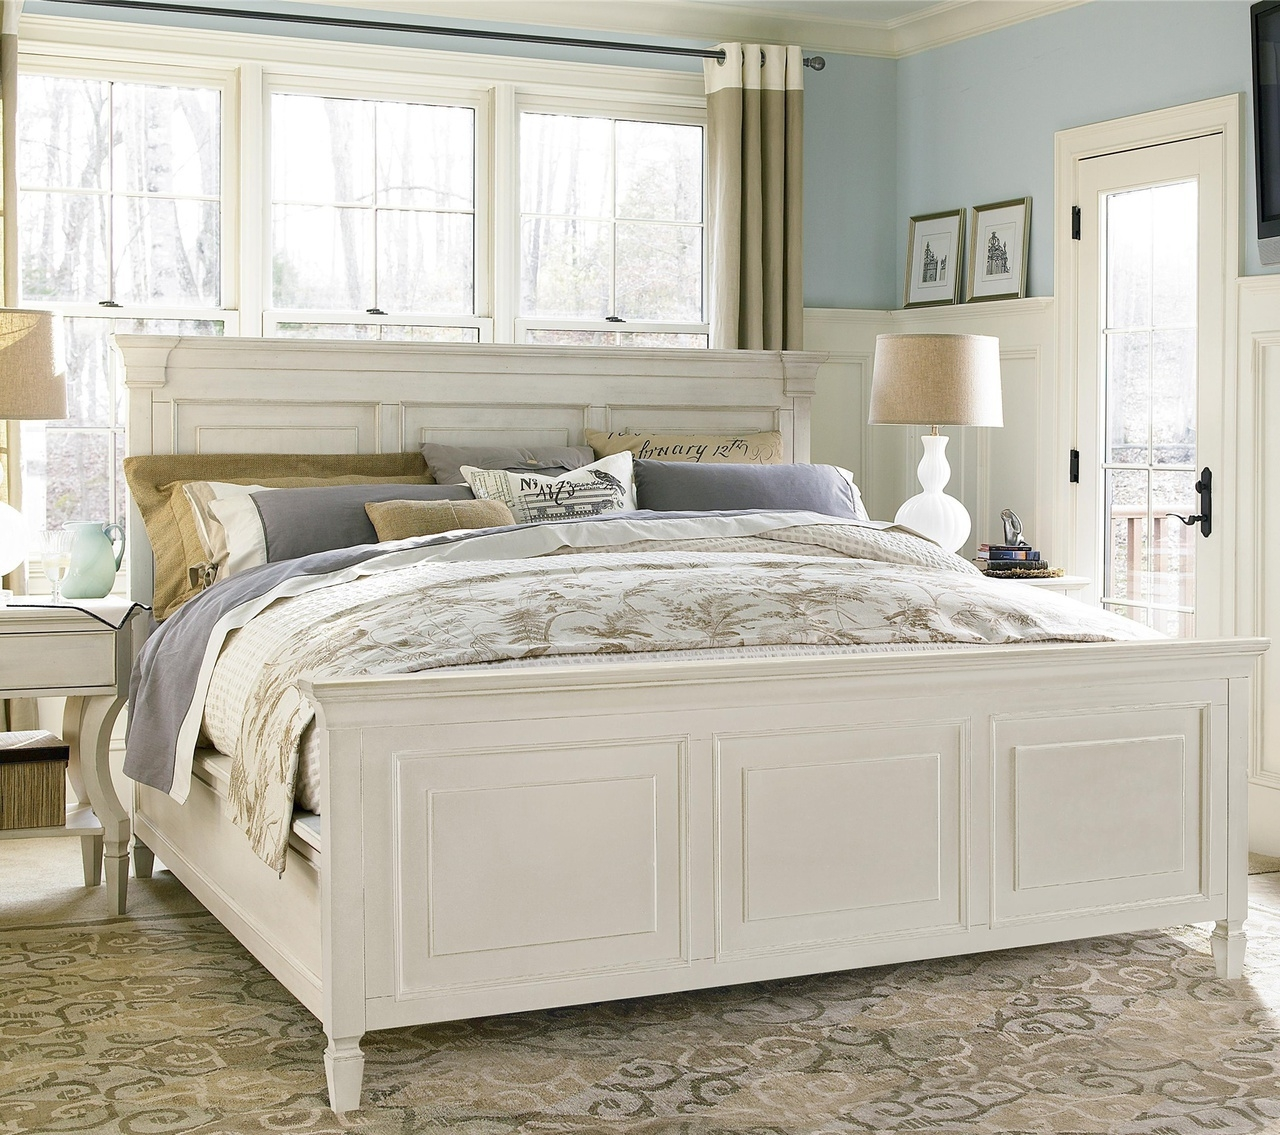 Distressed White Queen Bed Frame1280 X 1135